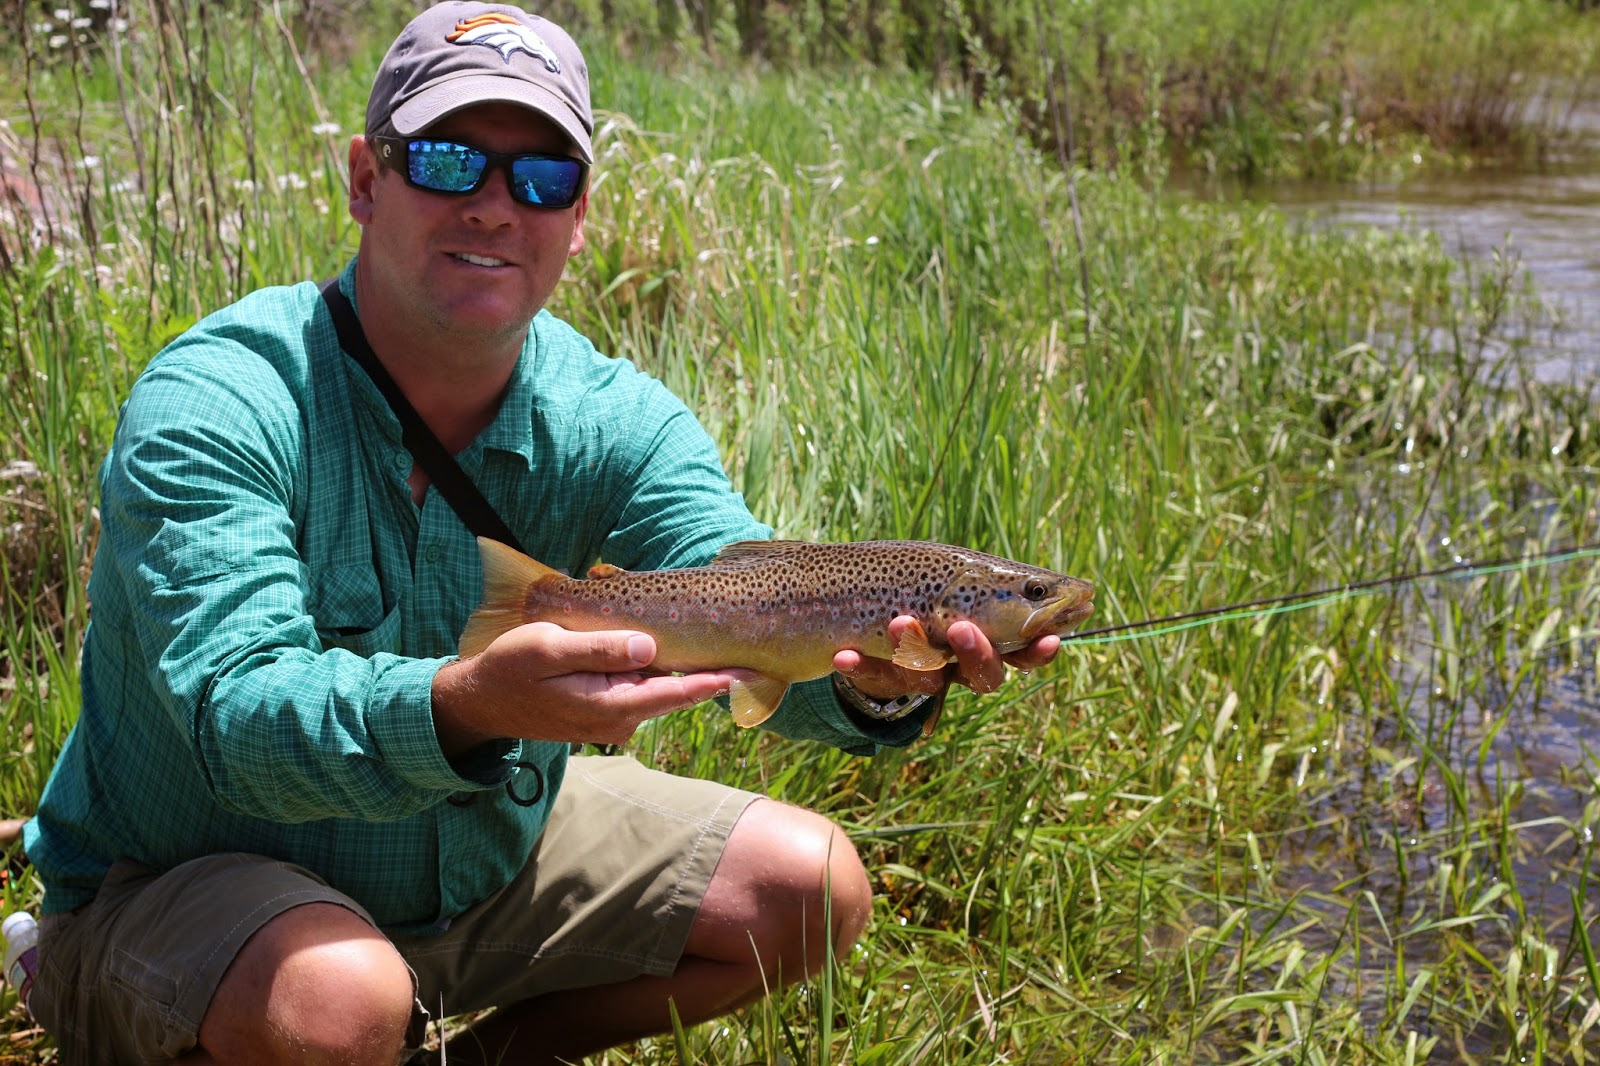 Roaring+Fork+High+Water+Photo+in+Colorado+with+Jay+Scott+Outdoors+13.JPG